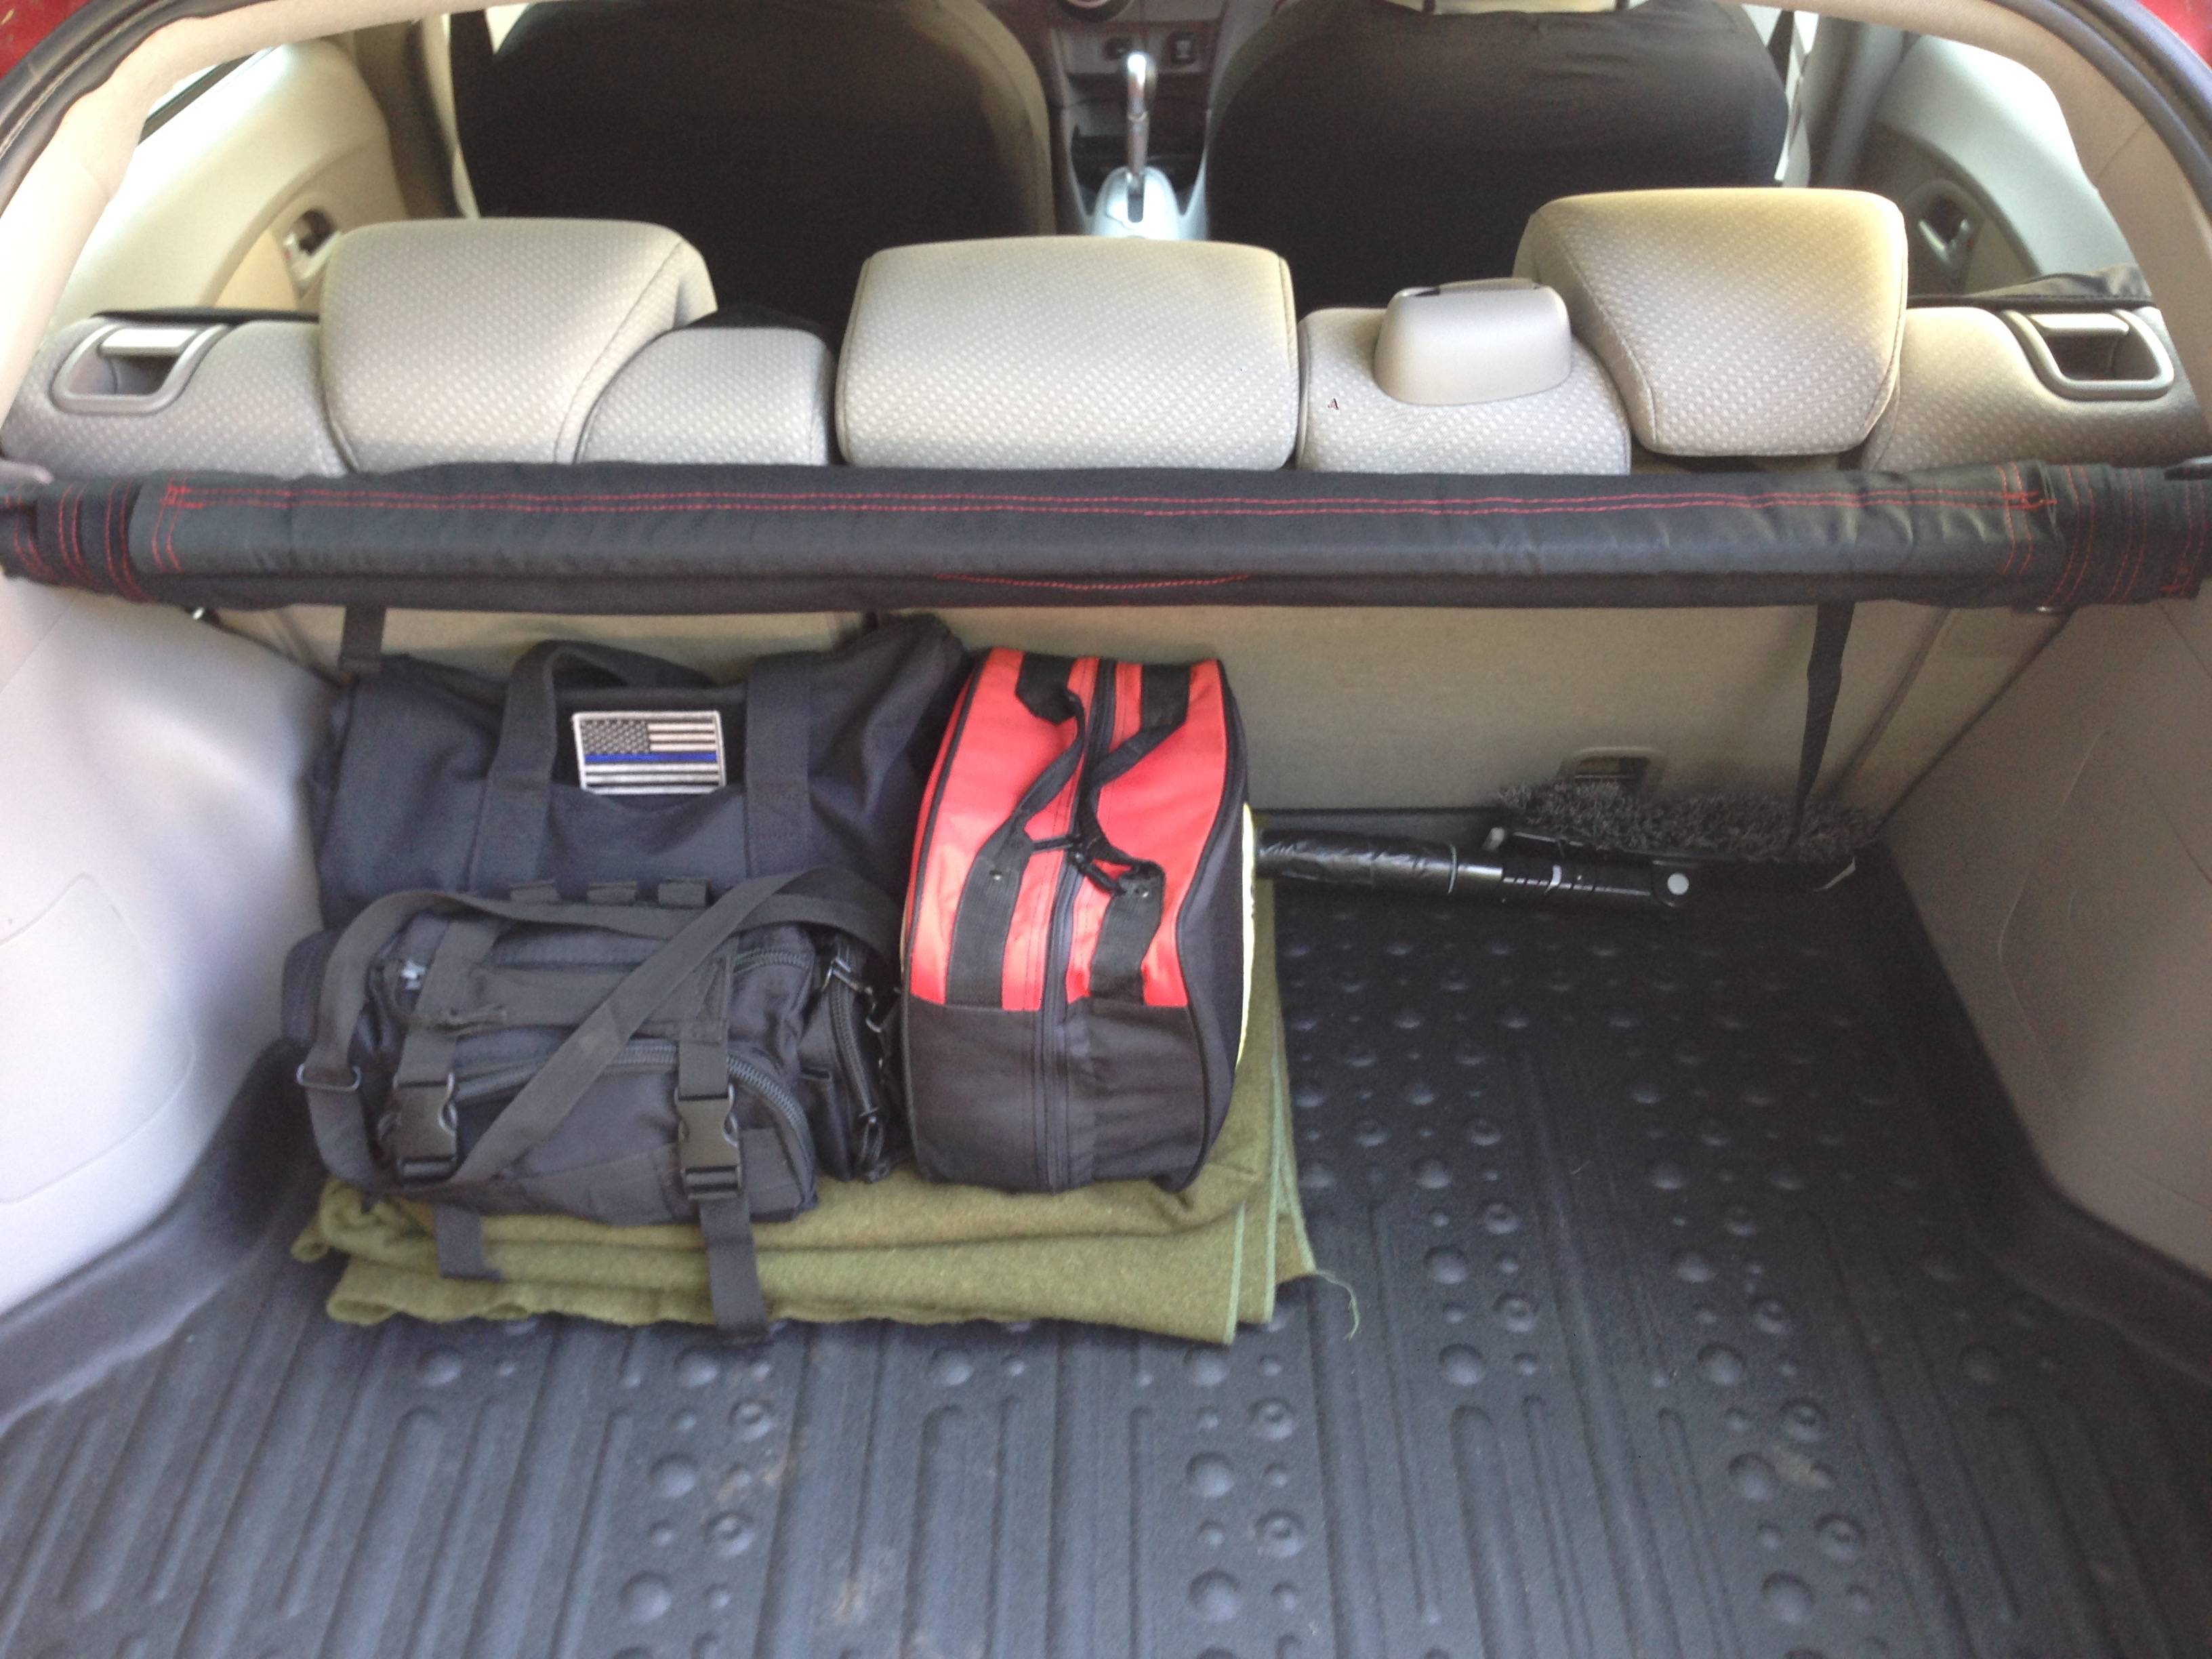 Picture of $20 Easy Canvas Monogram Cargo Cover (Without Embroidery Machine)